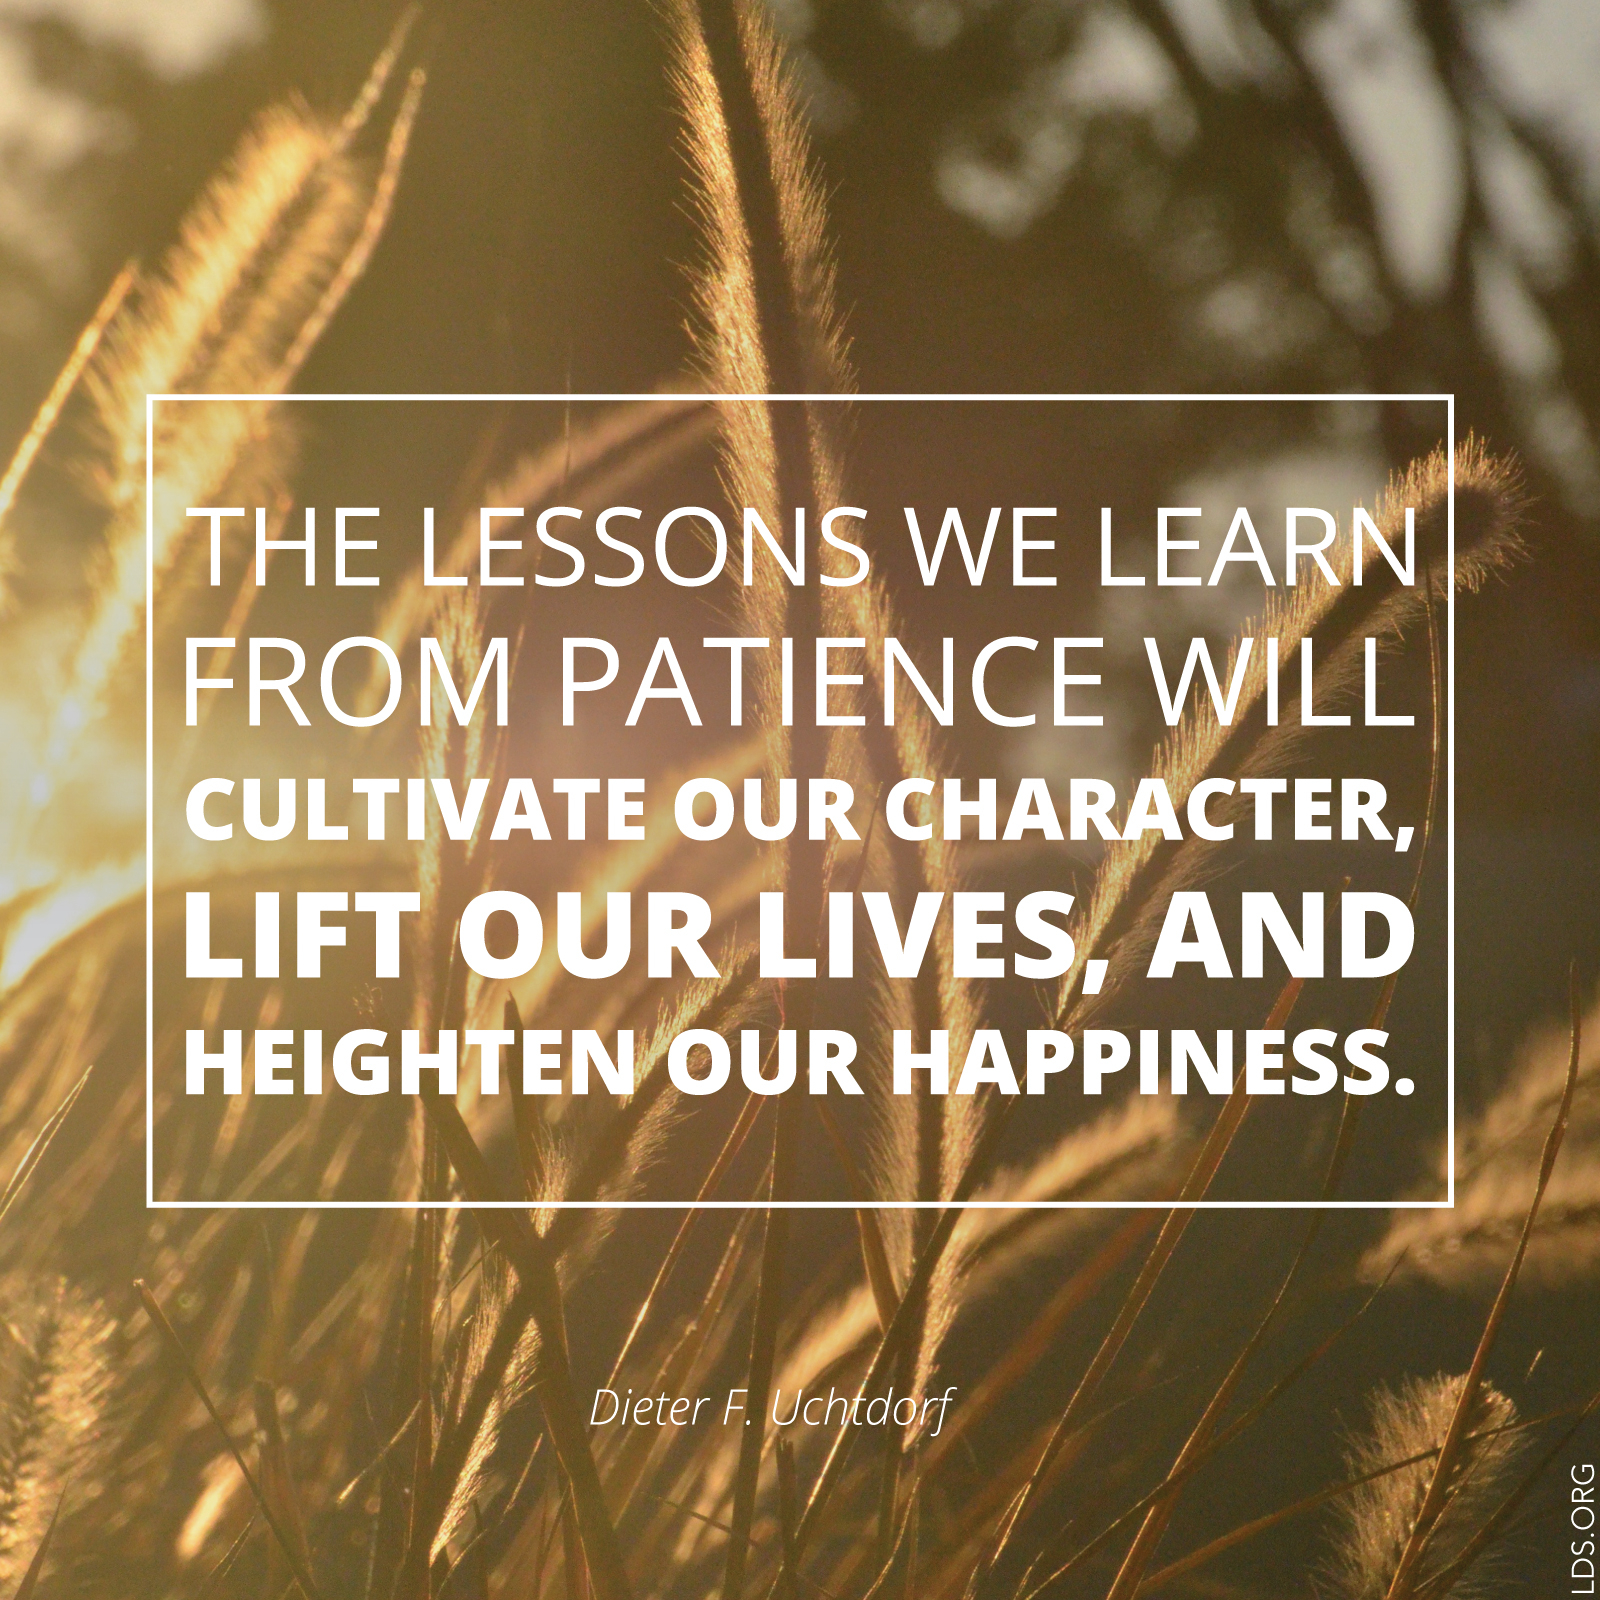 Cultivate Our Character